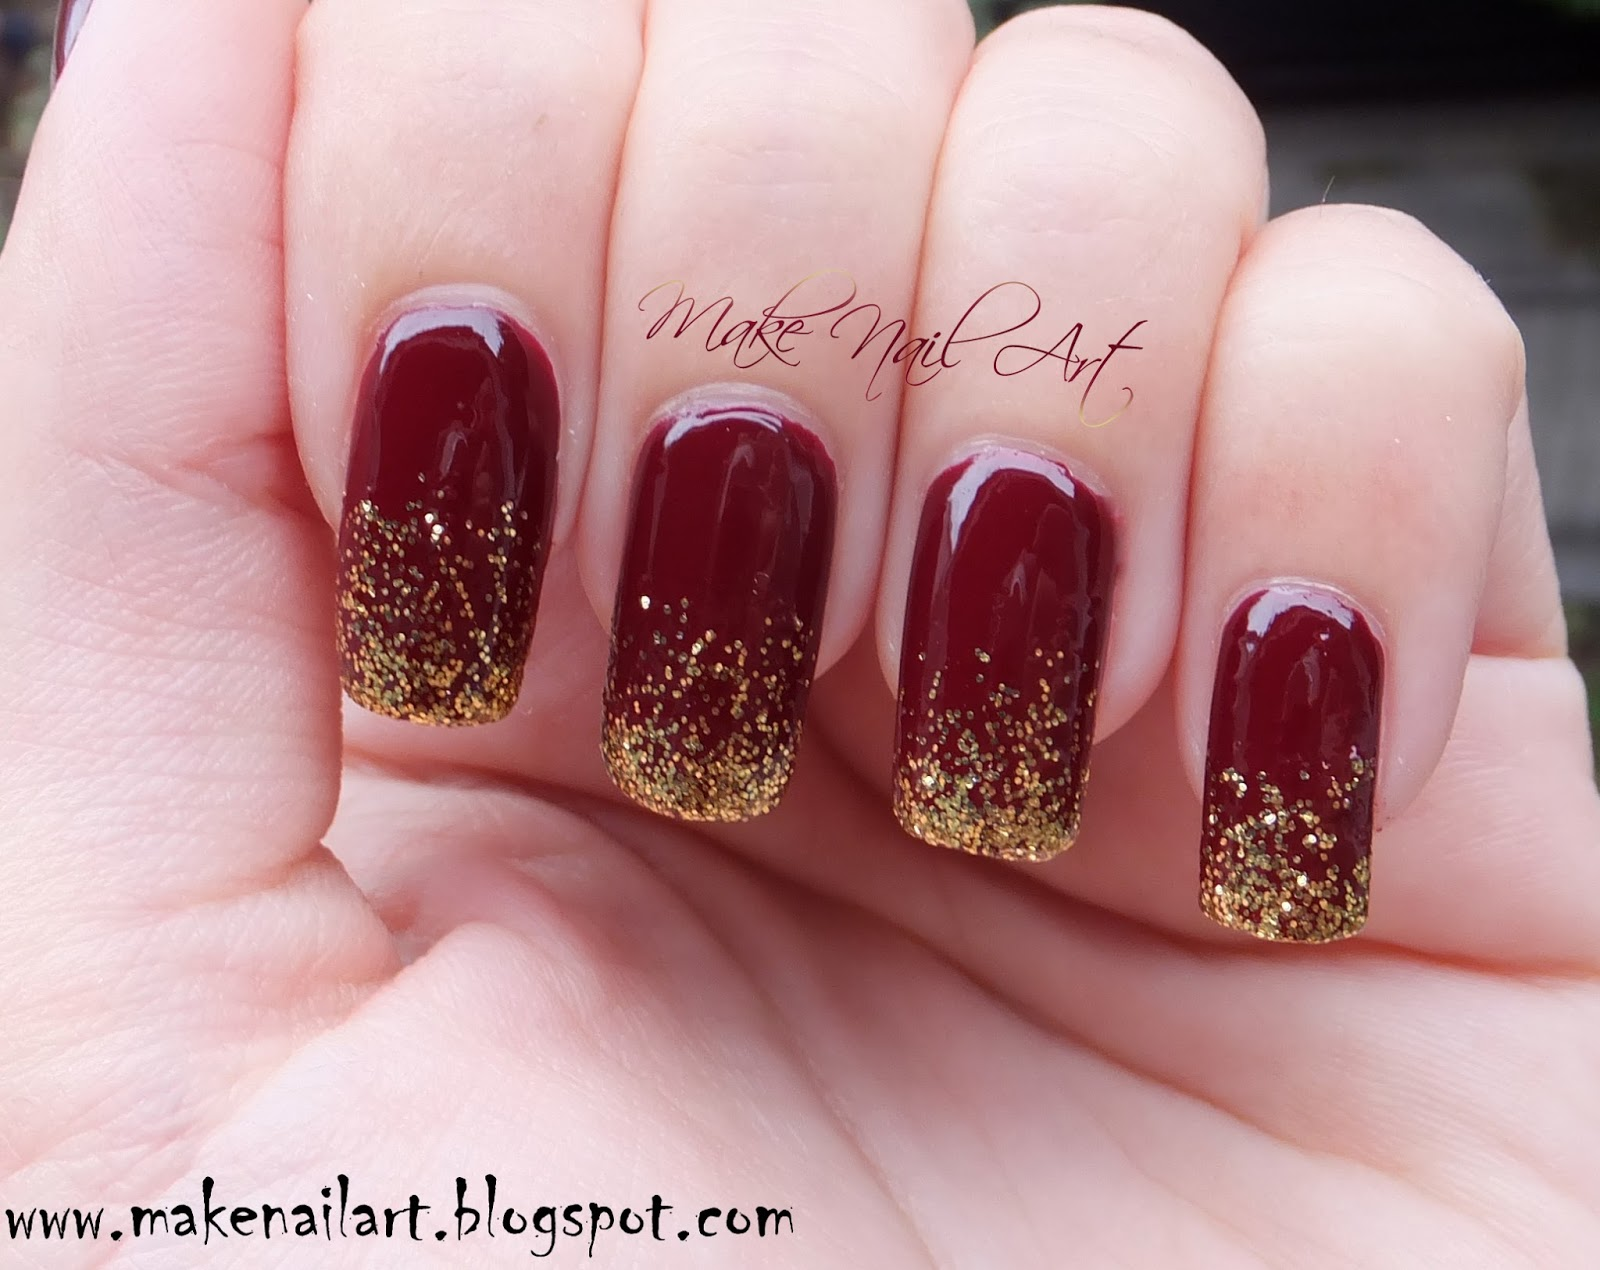 Easy Nail Designs For Autumn: Easy fall nail art designs ideas ...